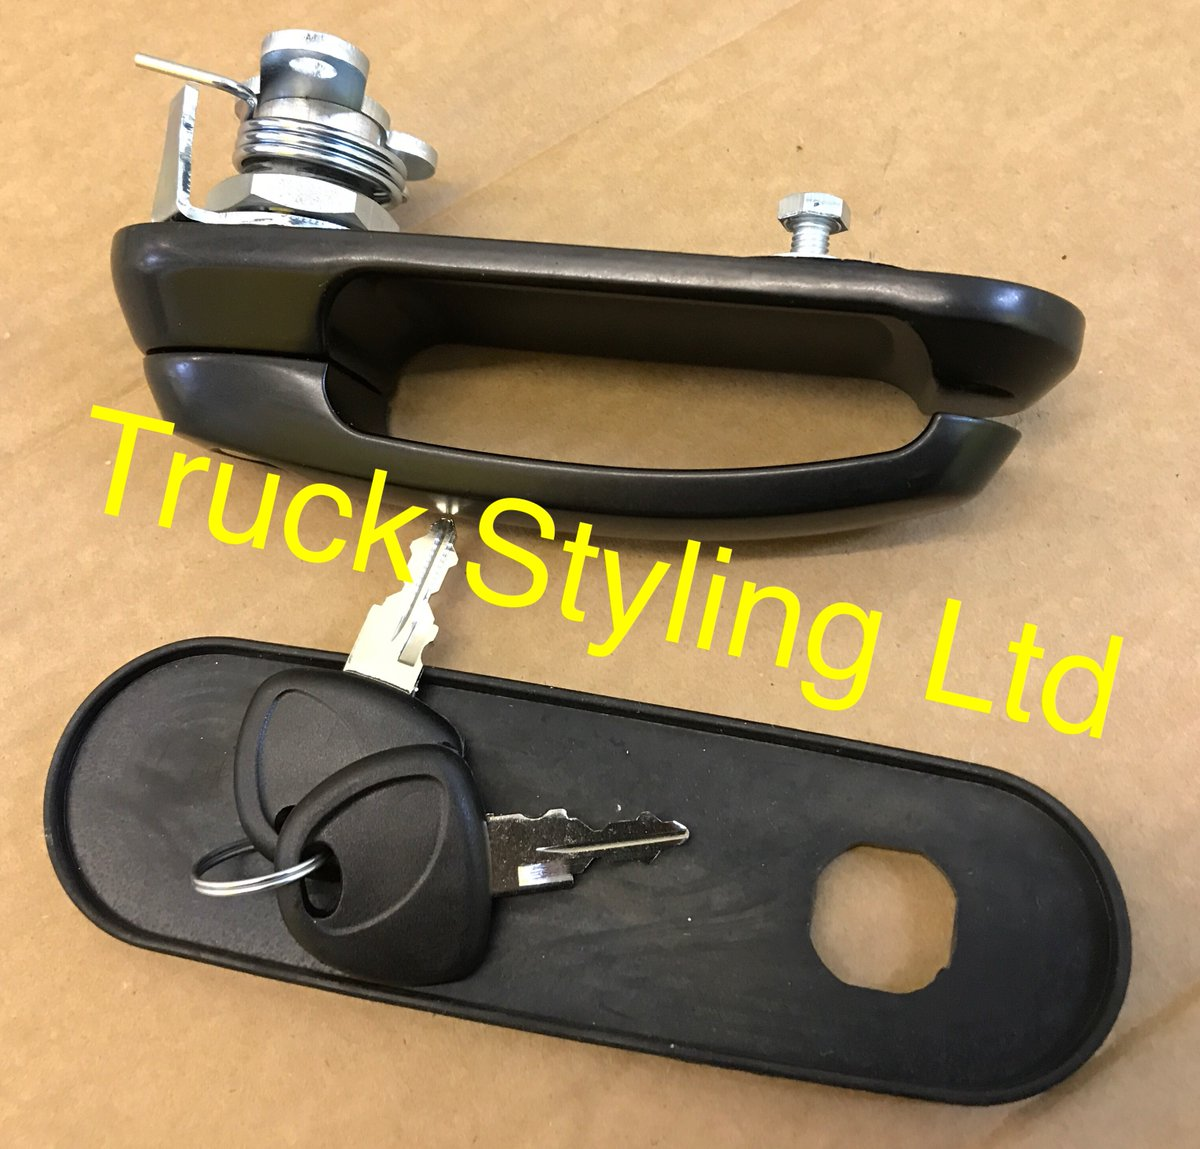 #Pickup truck Hard Top Canopy #lock. Universal fit, £65 Inc VAT. Tel/Text: 077-8662-6006 for more info.